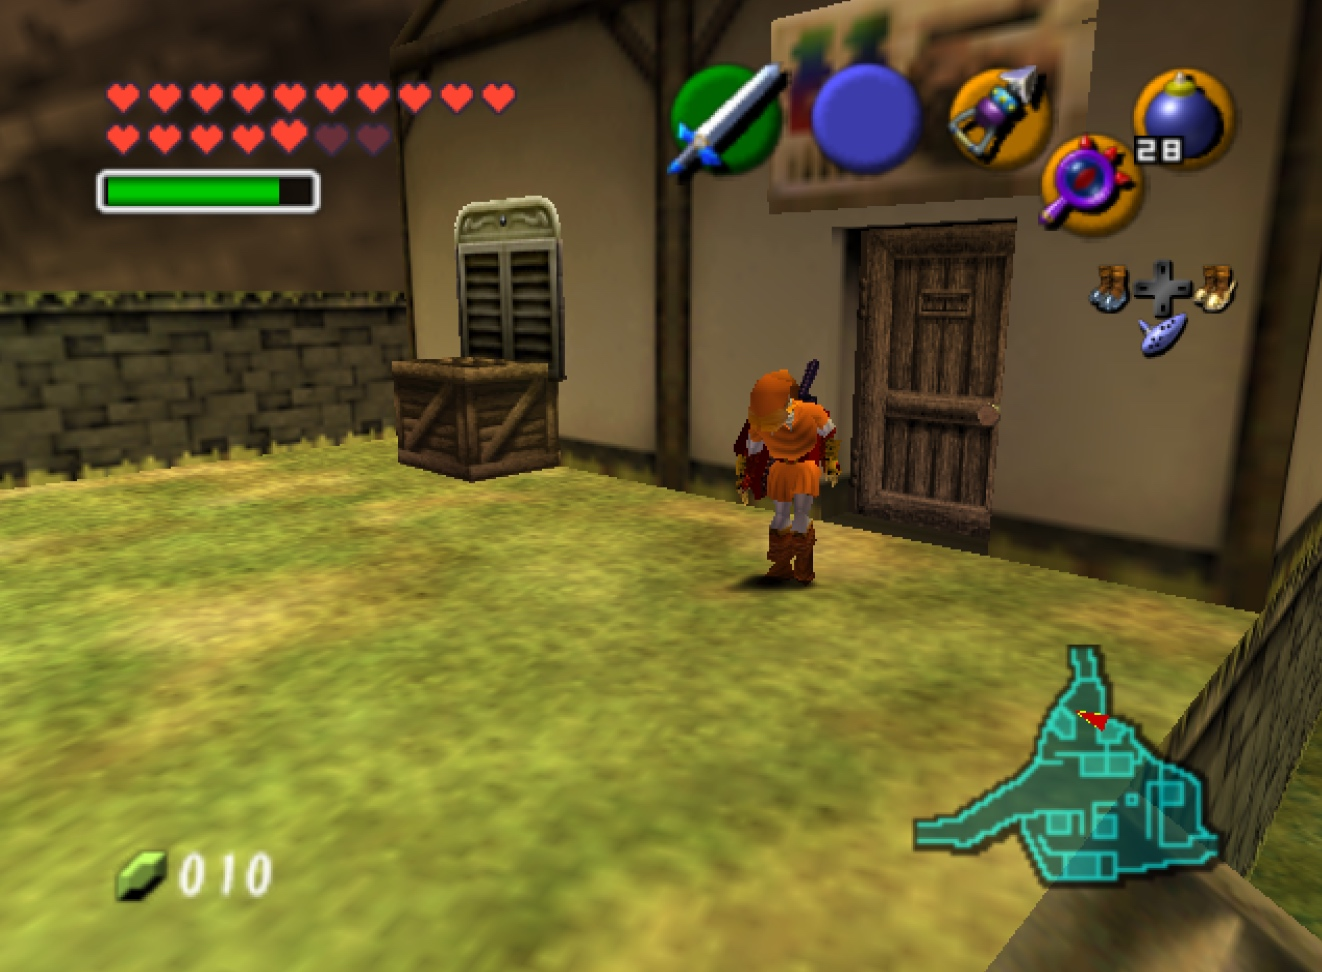 Alistair Aitcheson Games: Why is the Ocarina of Time